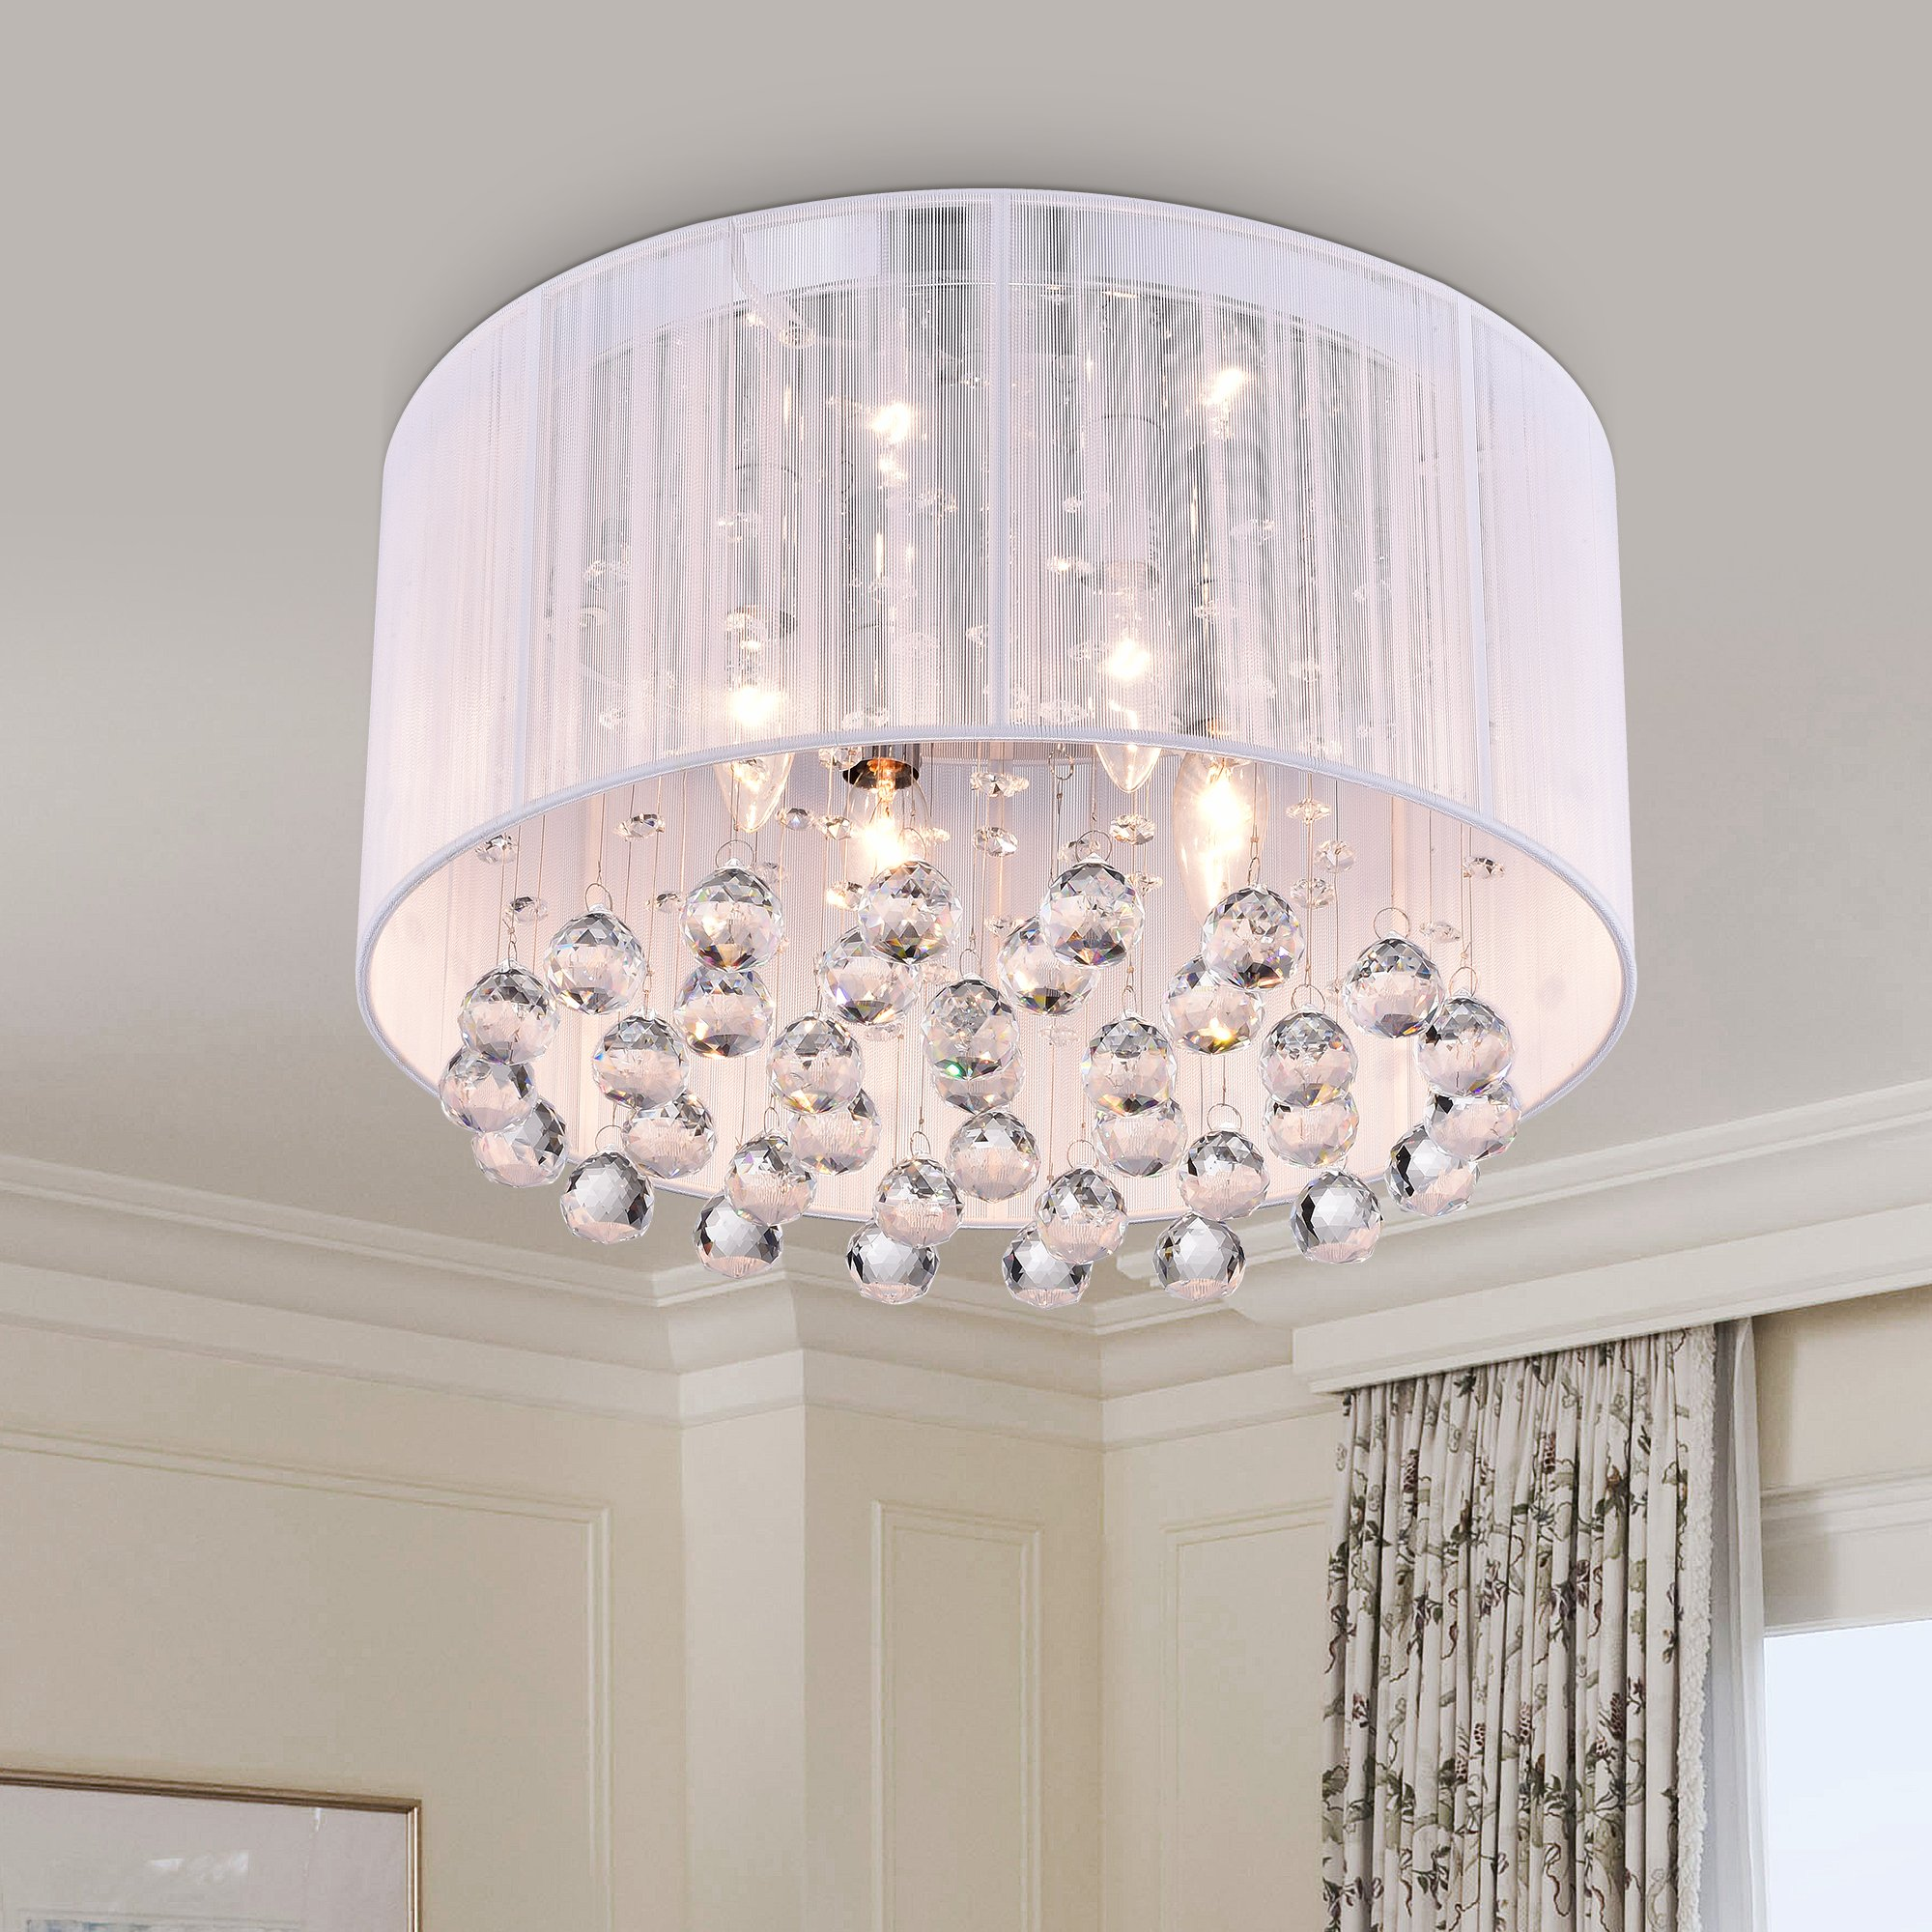 Whse of Tiffany RL8057 Optimus Chandelier by Whse of Tiffany (Image #1)